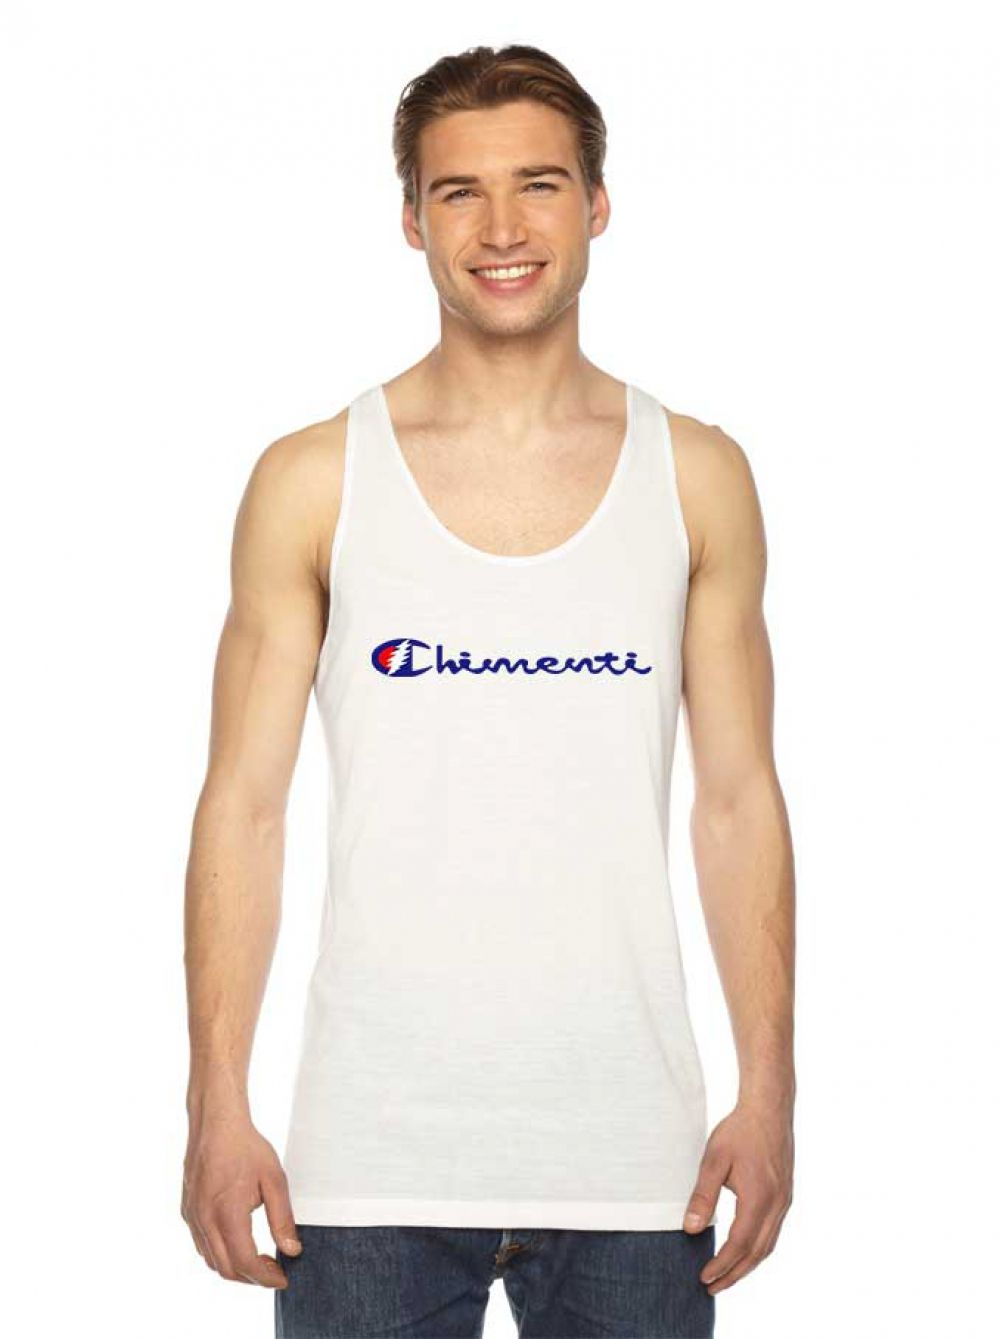 13012159a429 Chimenti Champion Parody Tank Top #Tee #Hype #Outfits #Outfit #Hypebeast #